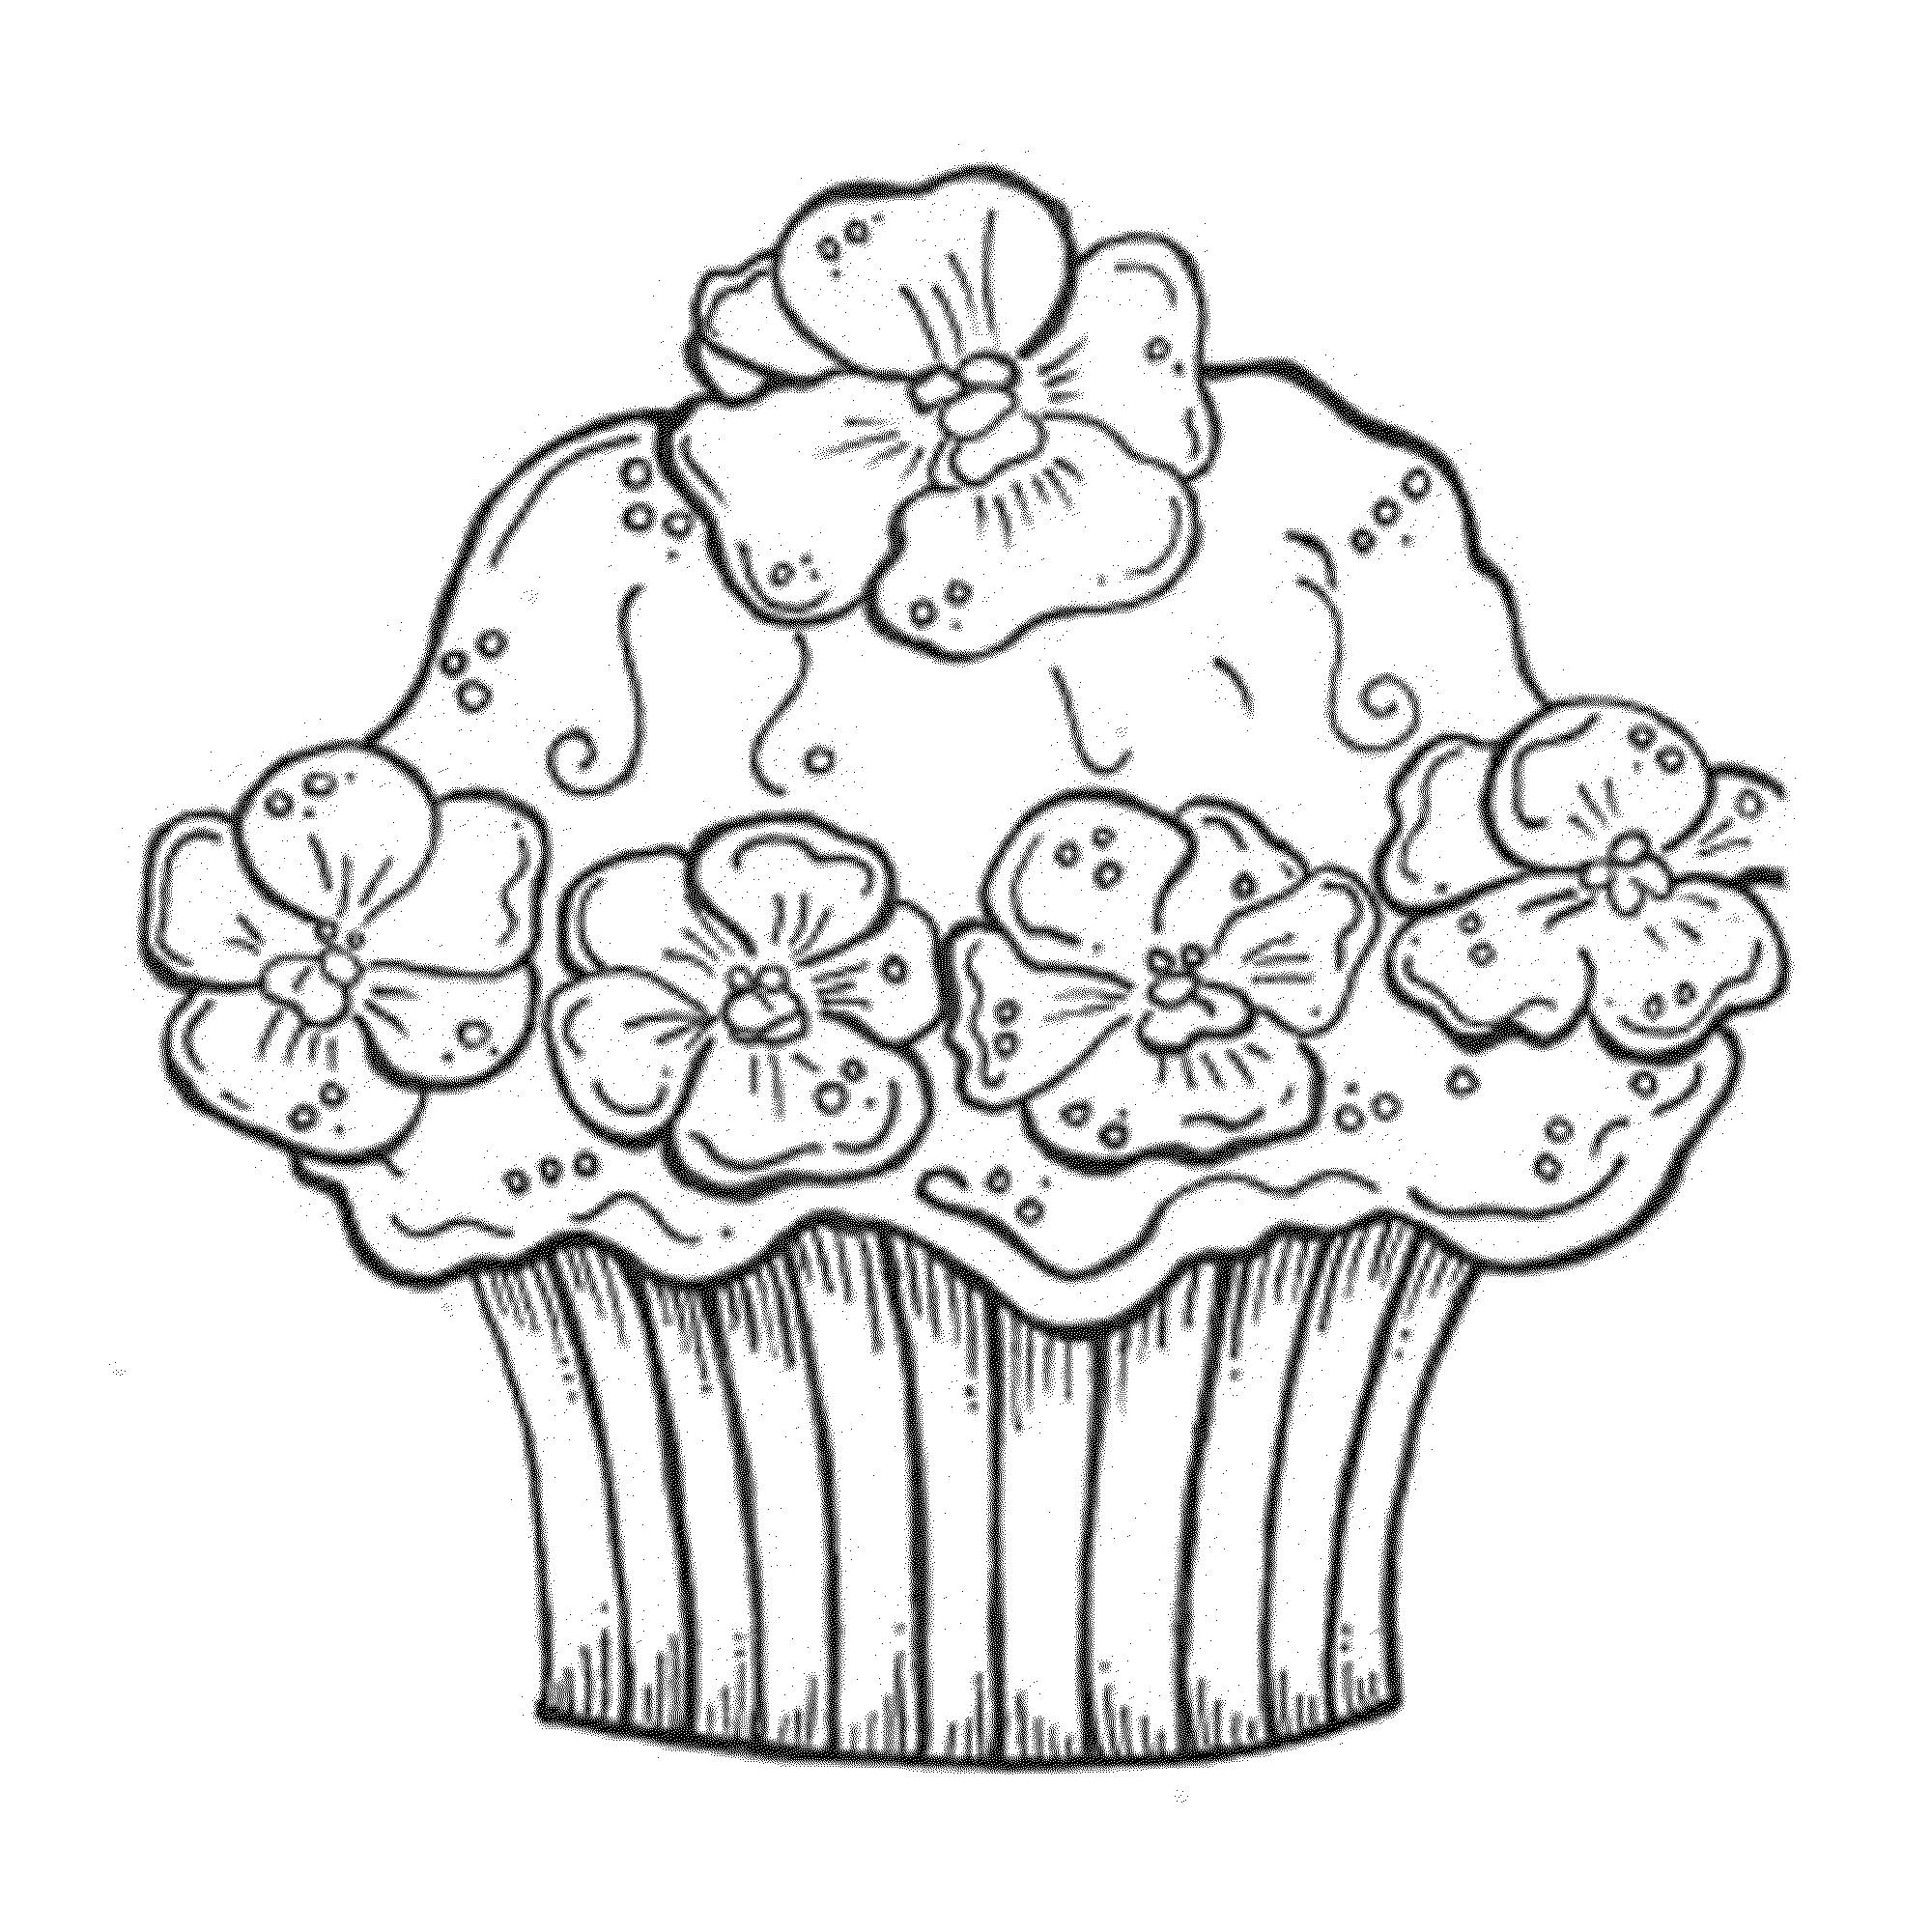 cup cake coloring pictures top 25 free printable cupcake coloring pages online cup cake coloring pictures